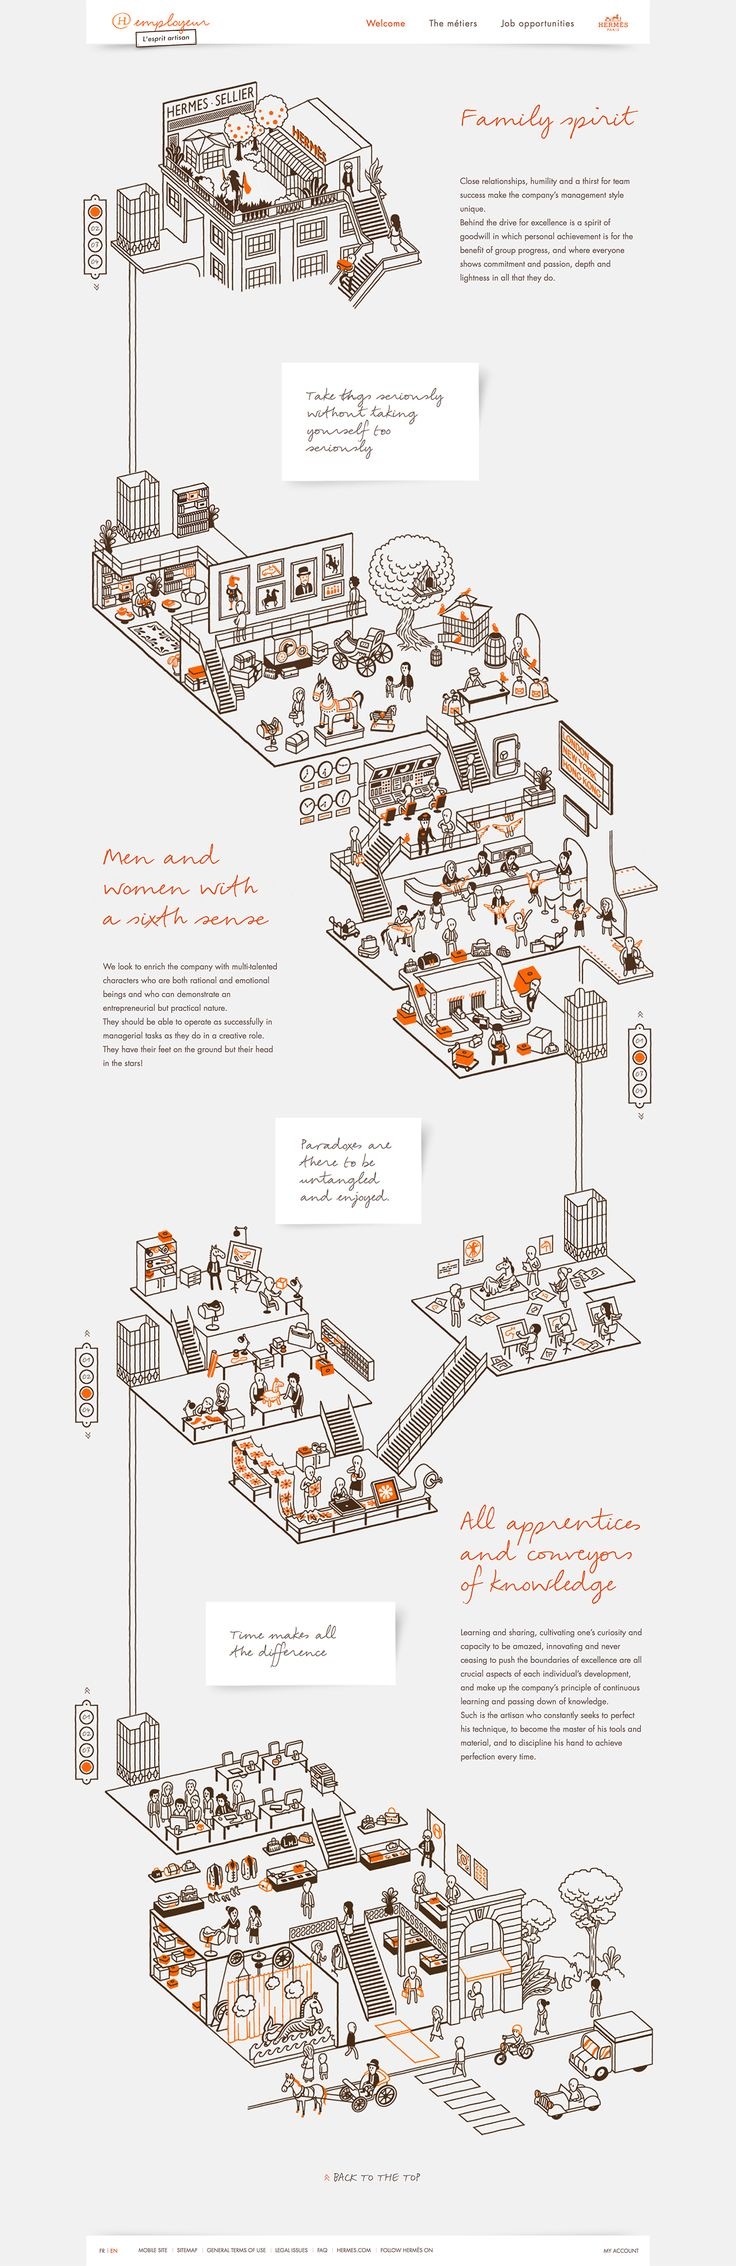 http://www.hermesemployeur.com/en  nice interaction & scroll effect combined with pretty neat illustrations!